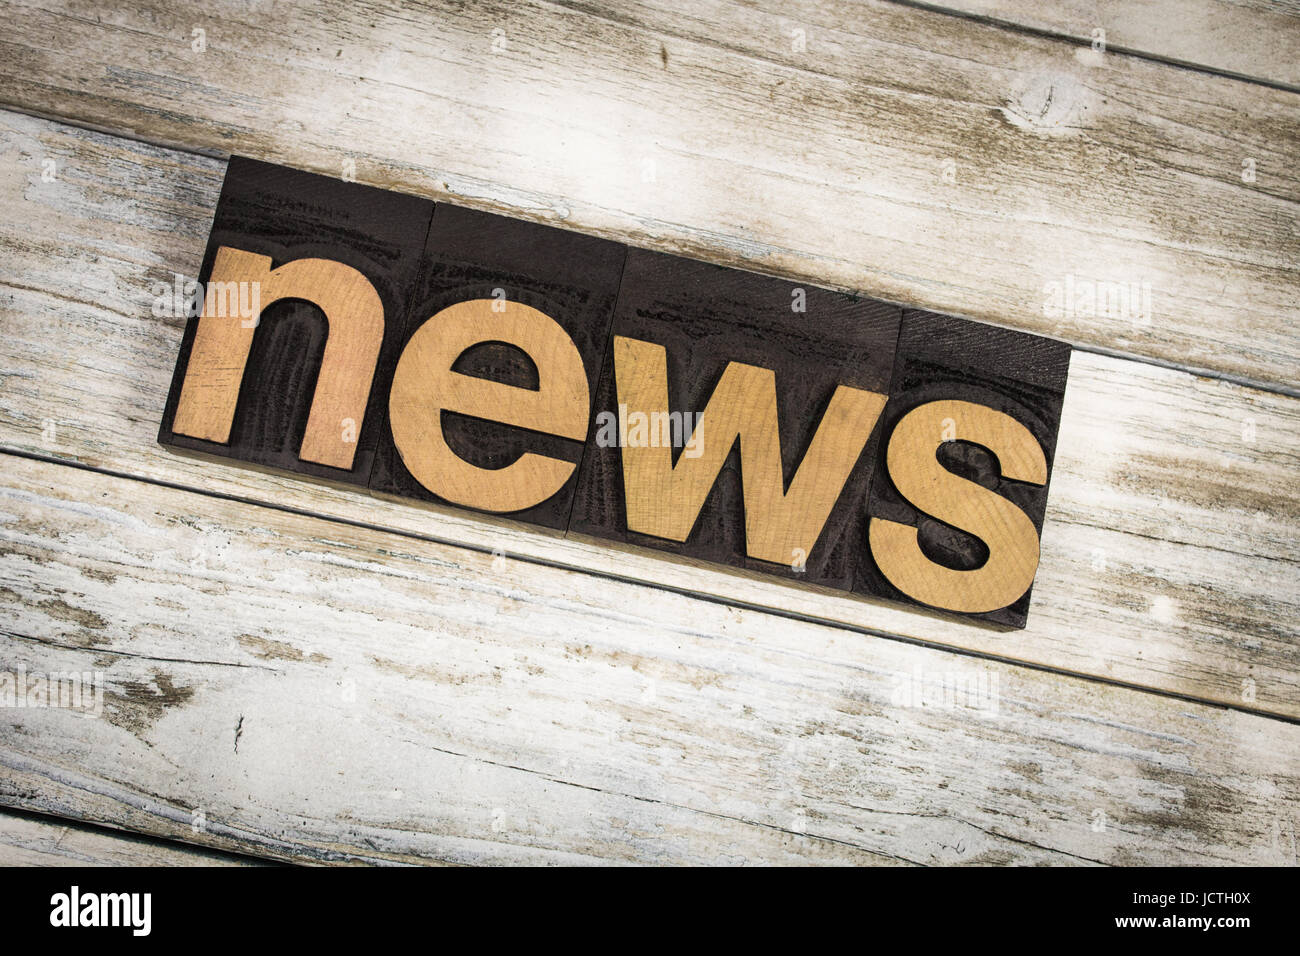 The word 'news' written in wooden letterpress type on a white washed old wooden boards background. - Stock Image